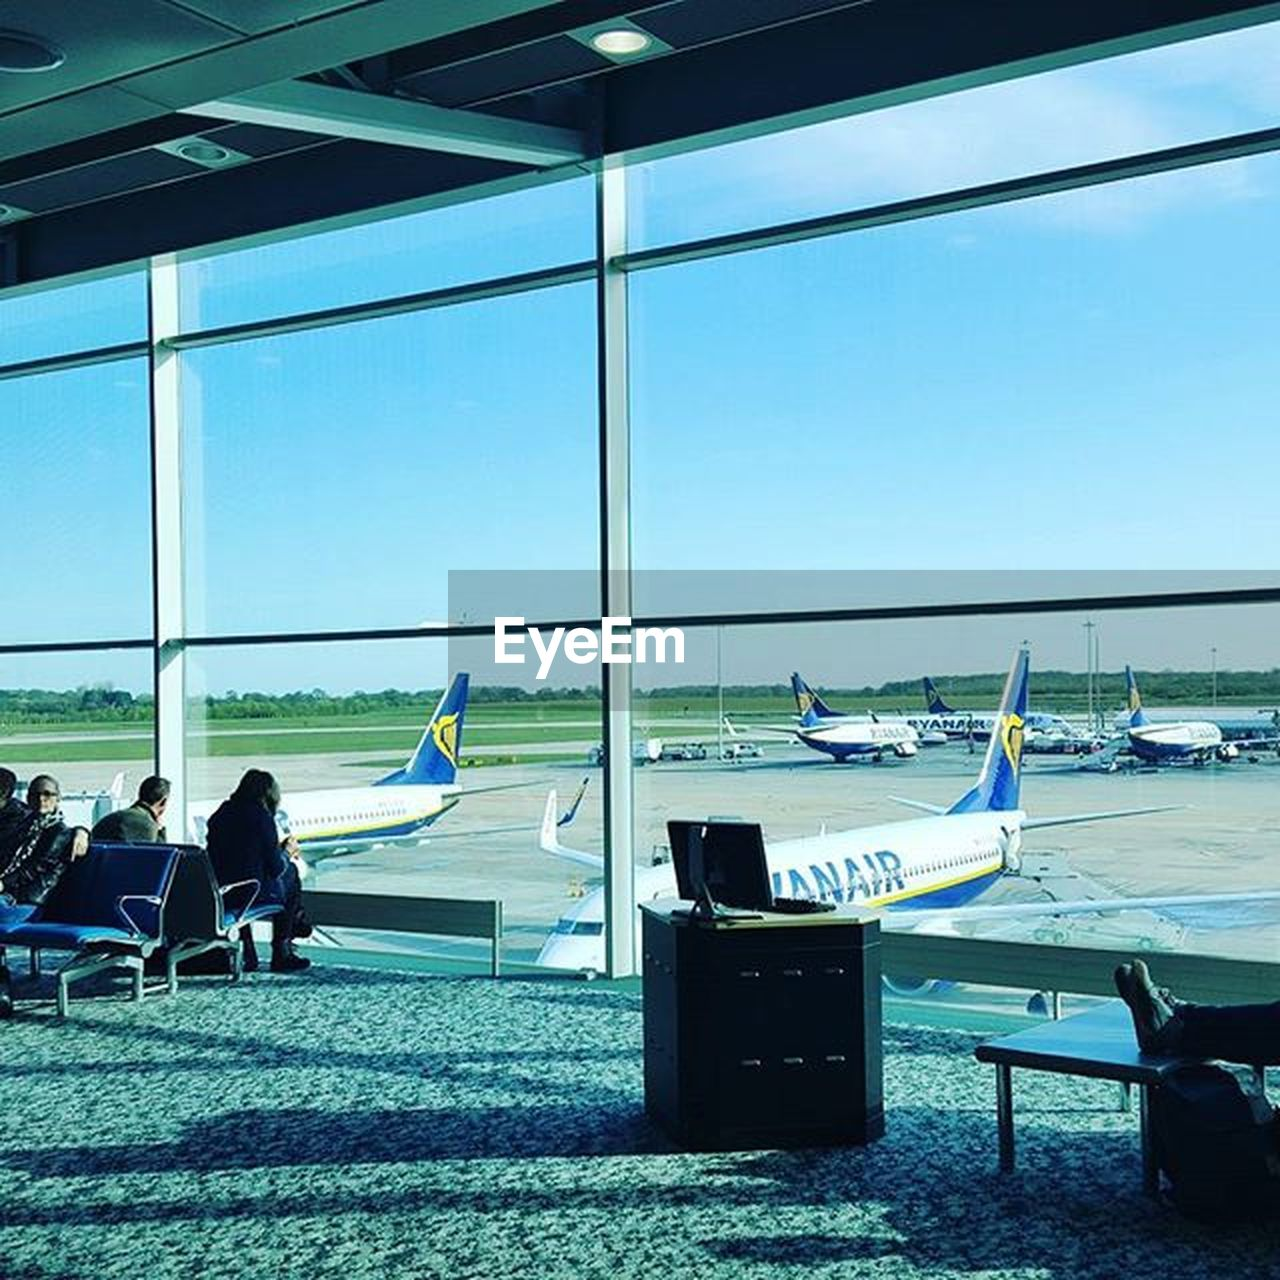 window, transportation, airport, day, men, real people, airplane, indoors, sky, flying, airport departure area, architecture, adult, people